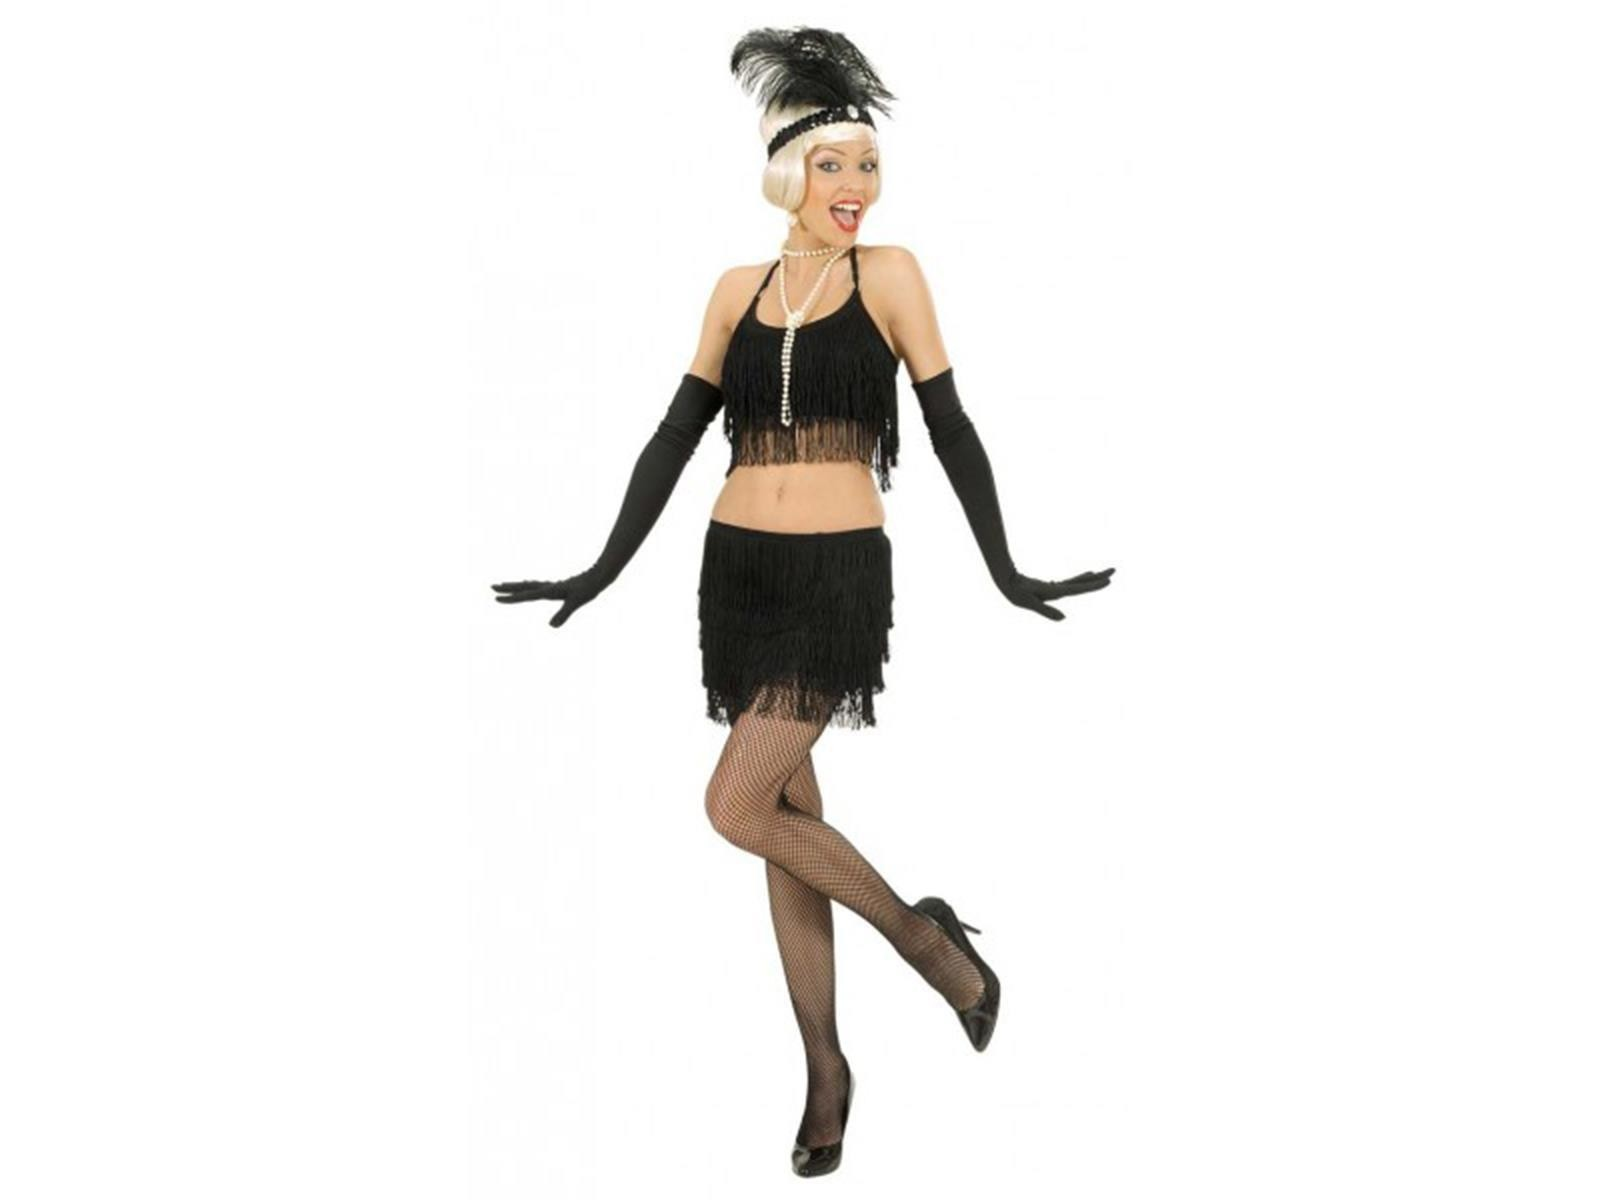 Fringed Skirt and Top Small UK 8-10 Adult Ladies Fancy Dress Costume